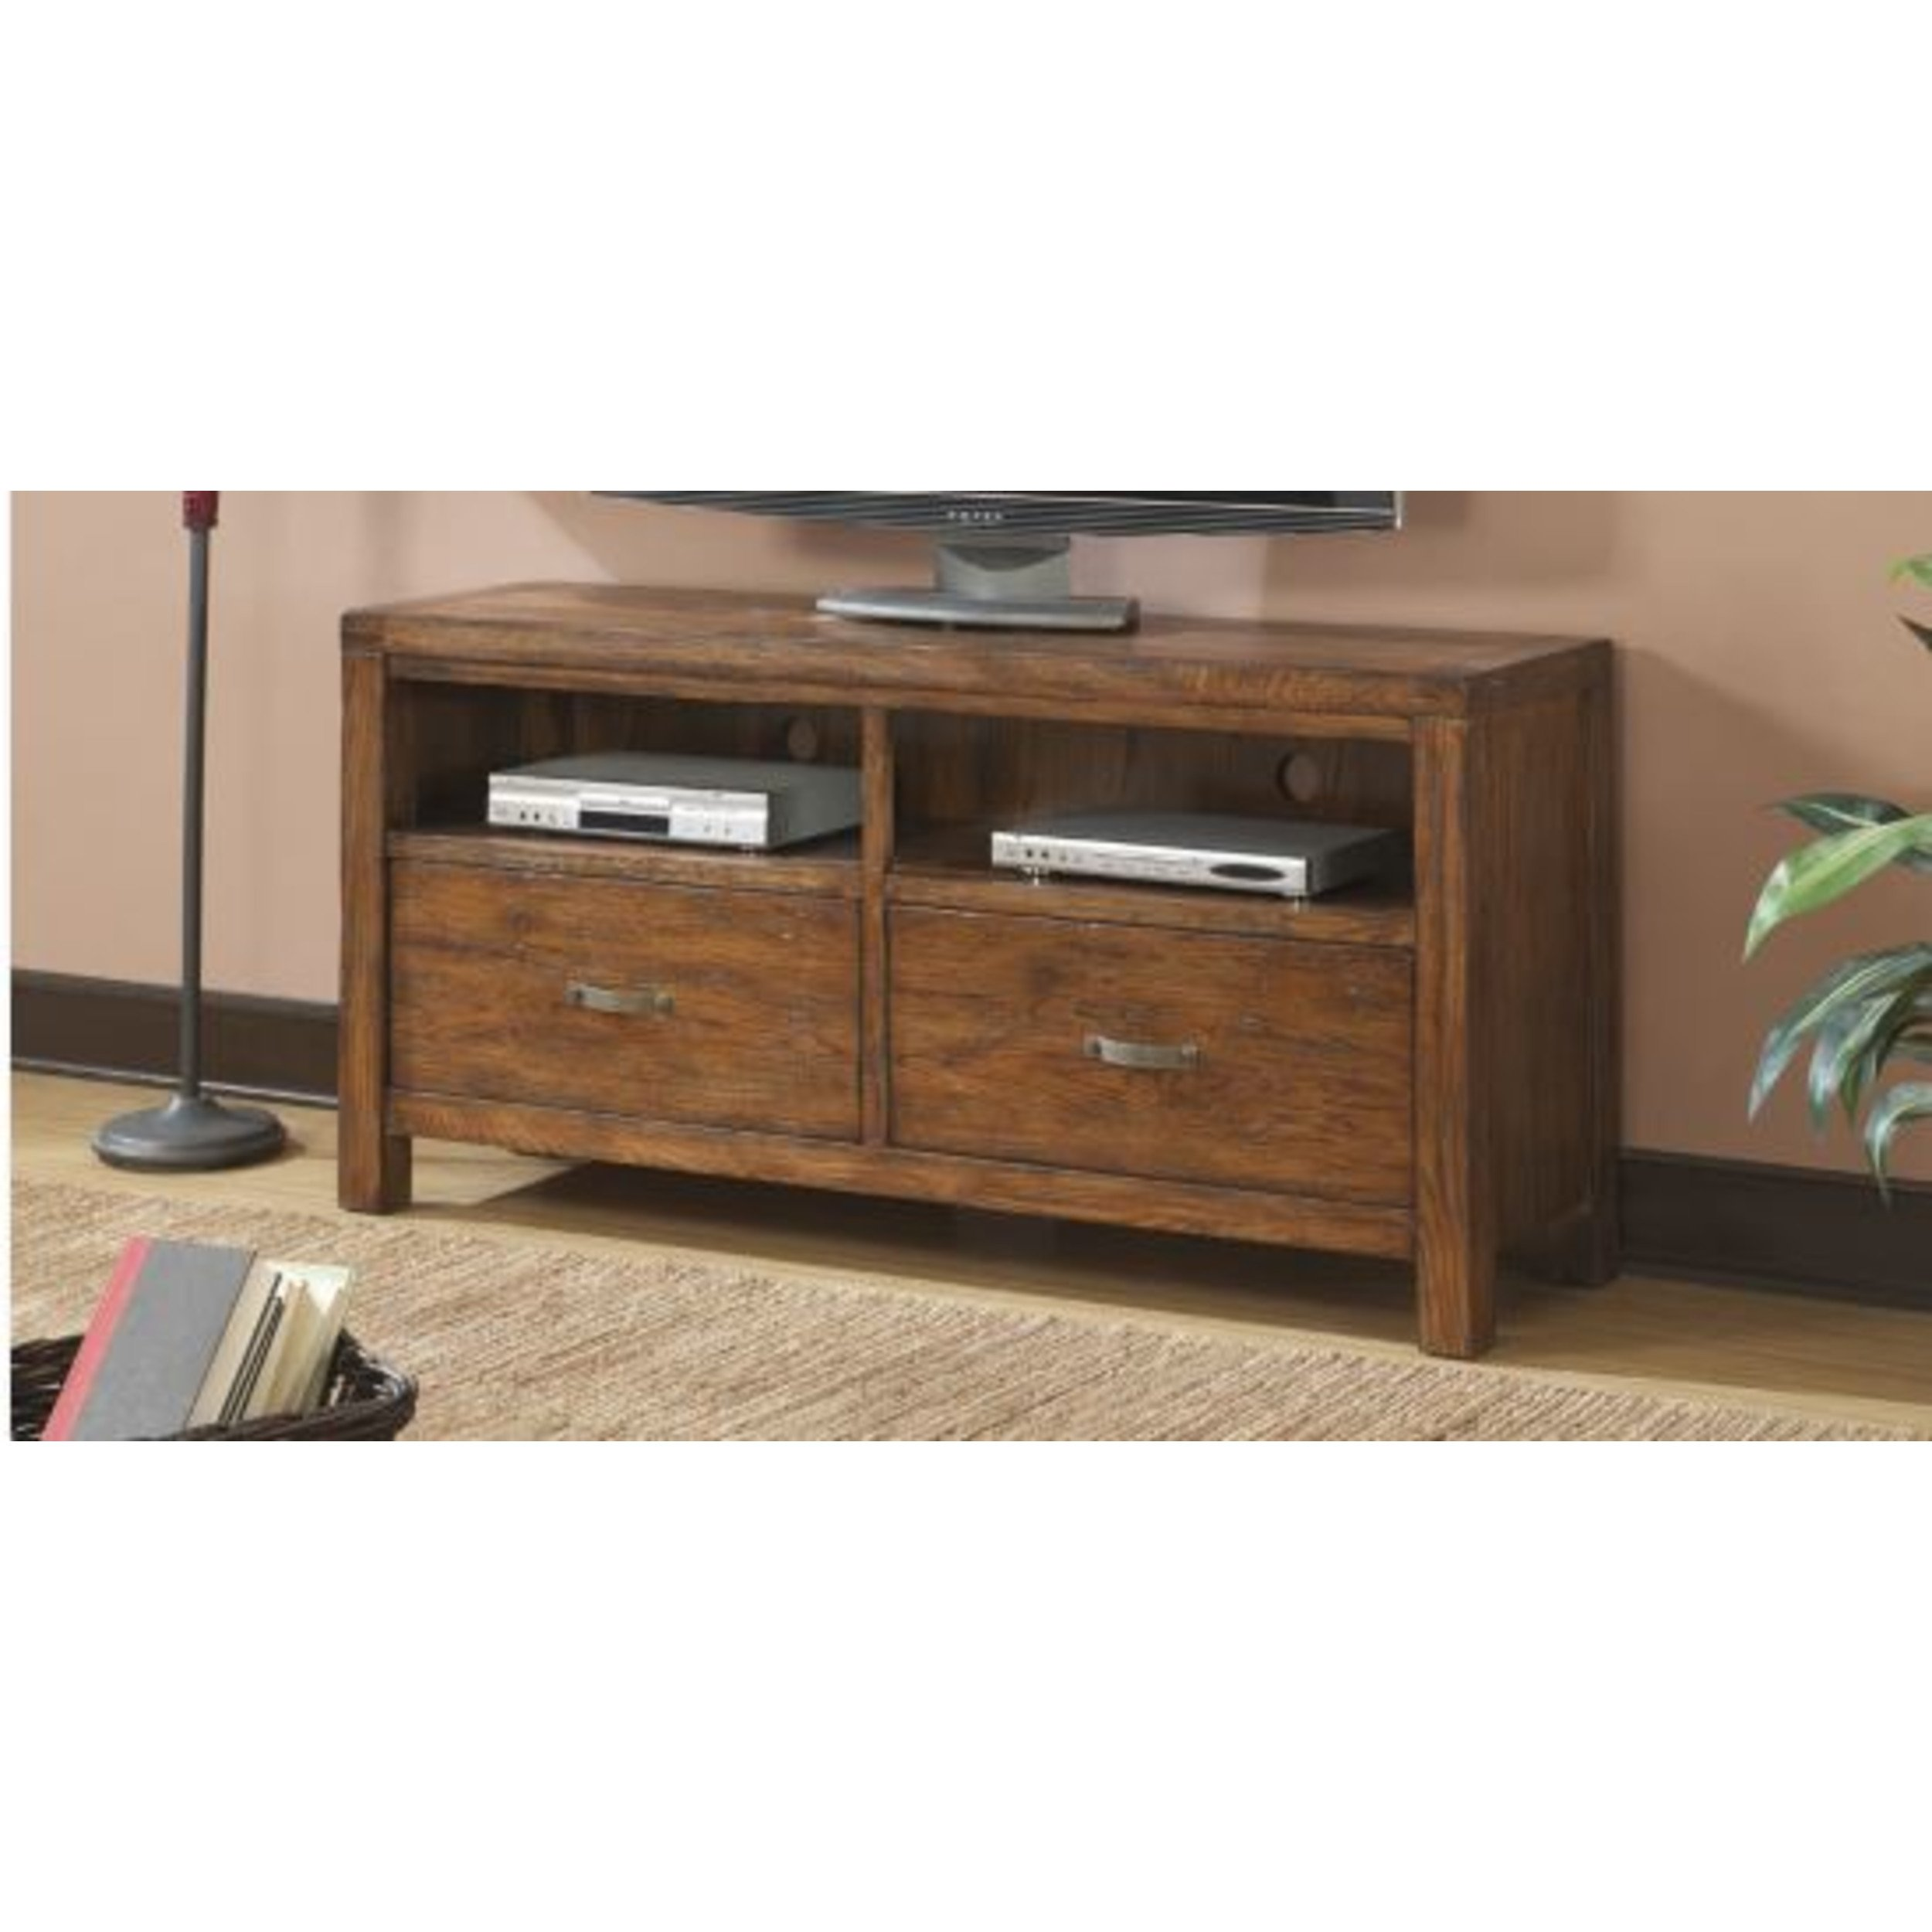 Emerald Home Brown TV Console with Two Drawers and Open Shelving